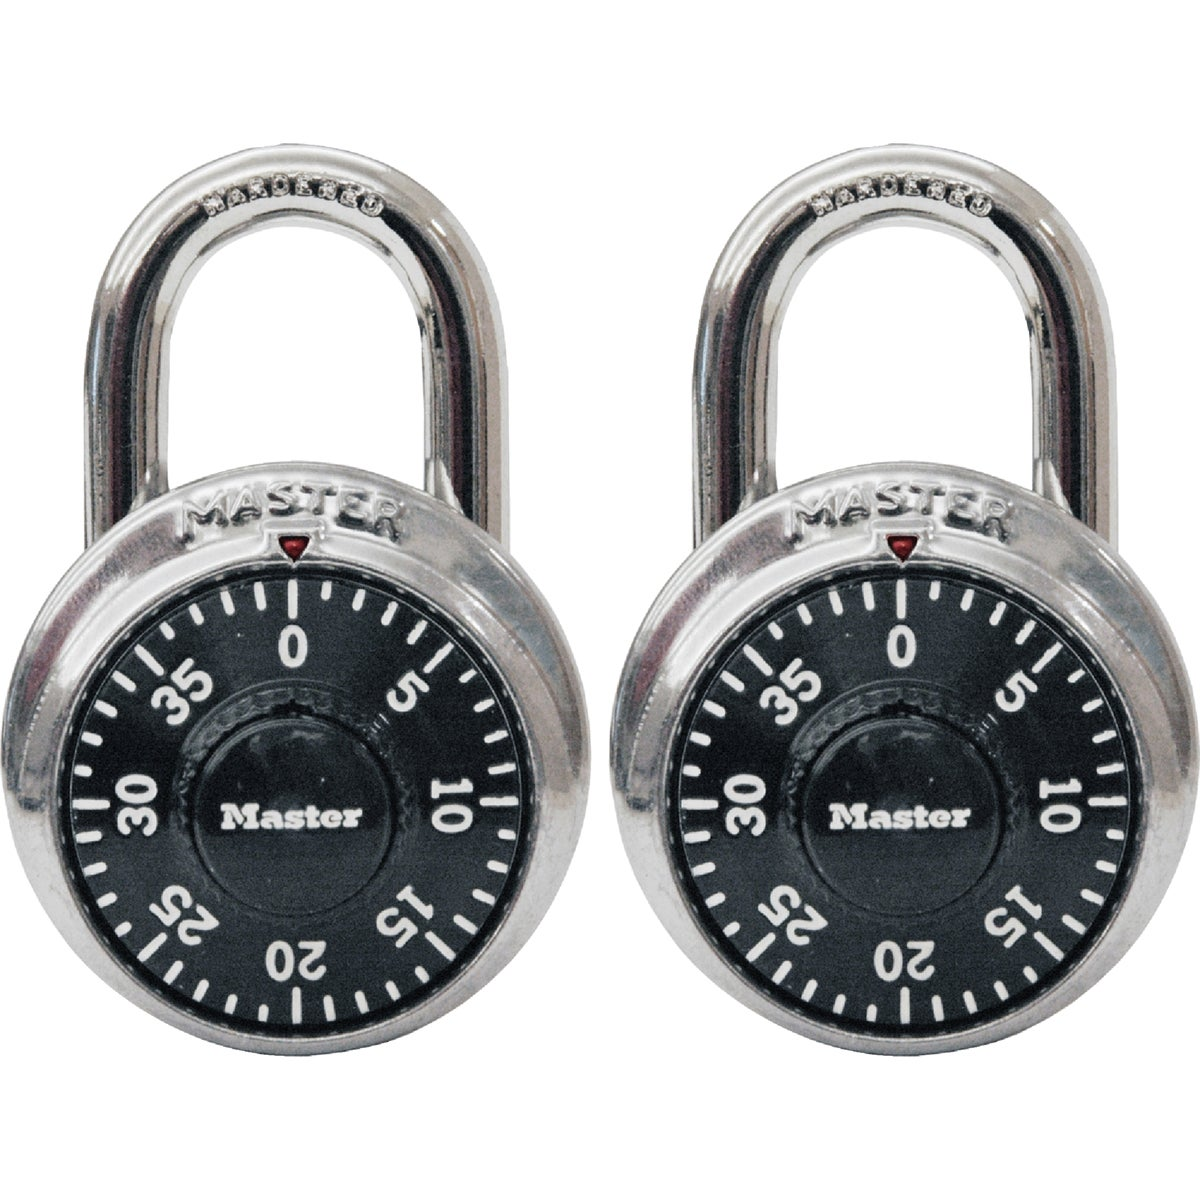 SS COMBINATION PADLOCK - 1500T by Master Lock Company